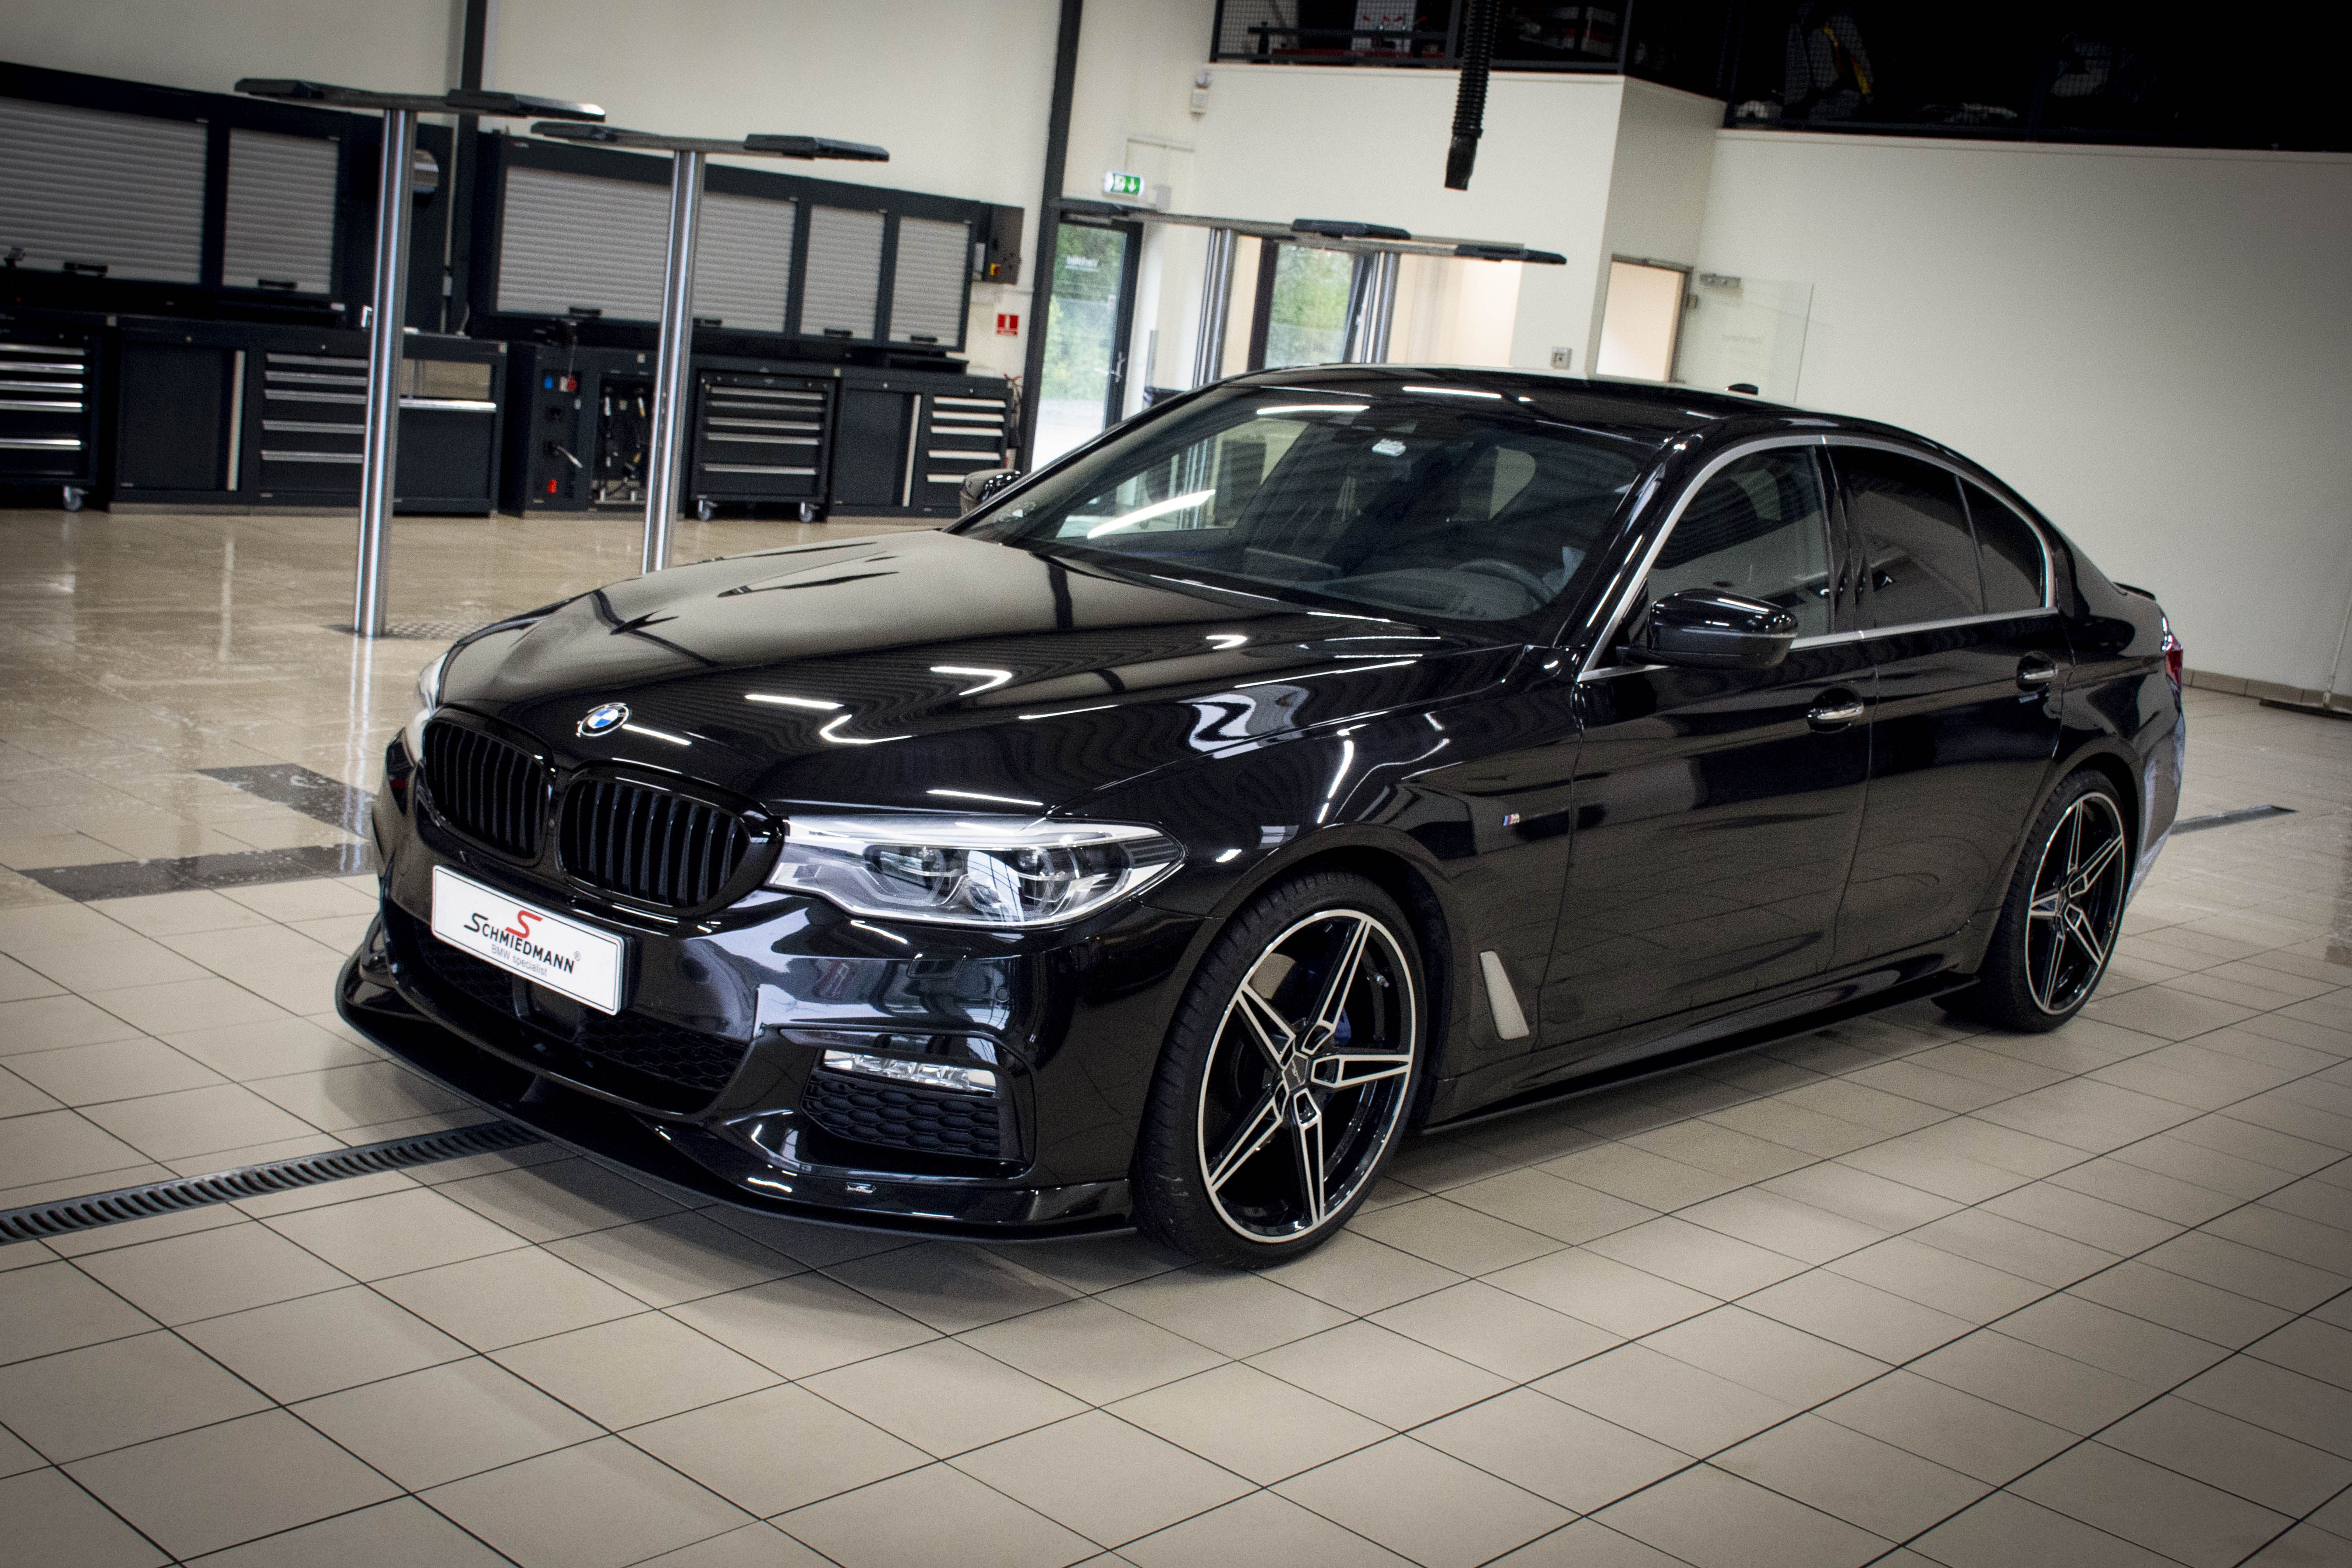 f25e2a312141 The final result of the black 5 series BMW G30 530D B57 car from 2017.